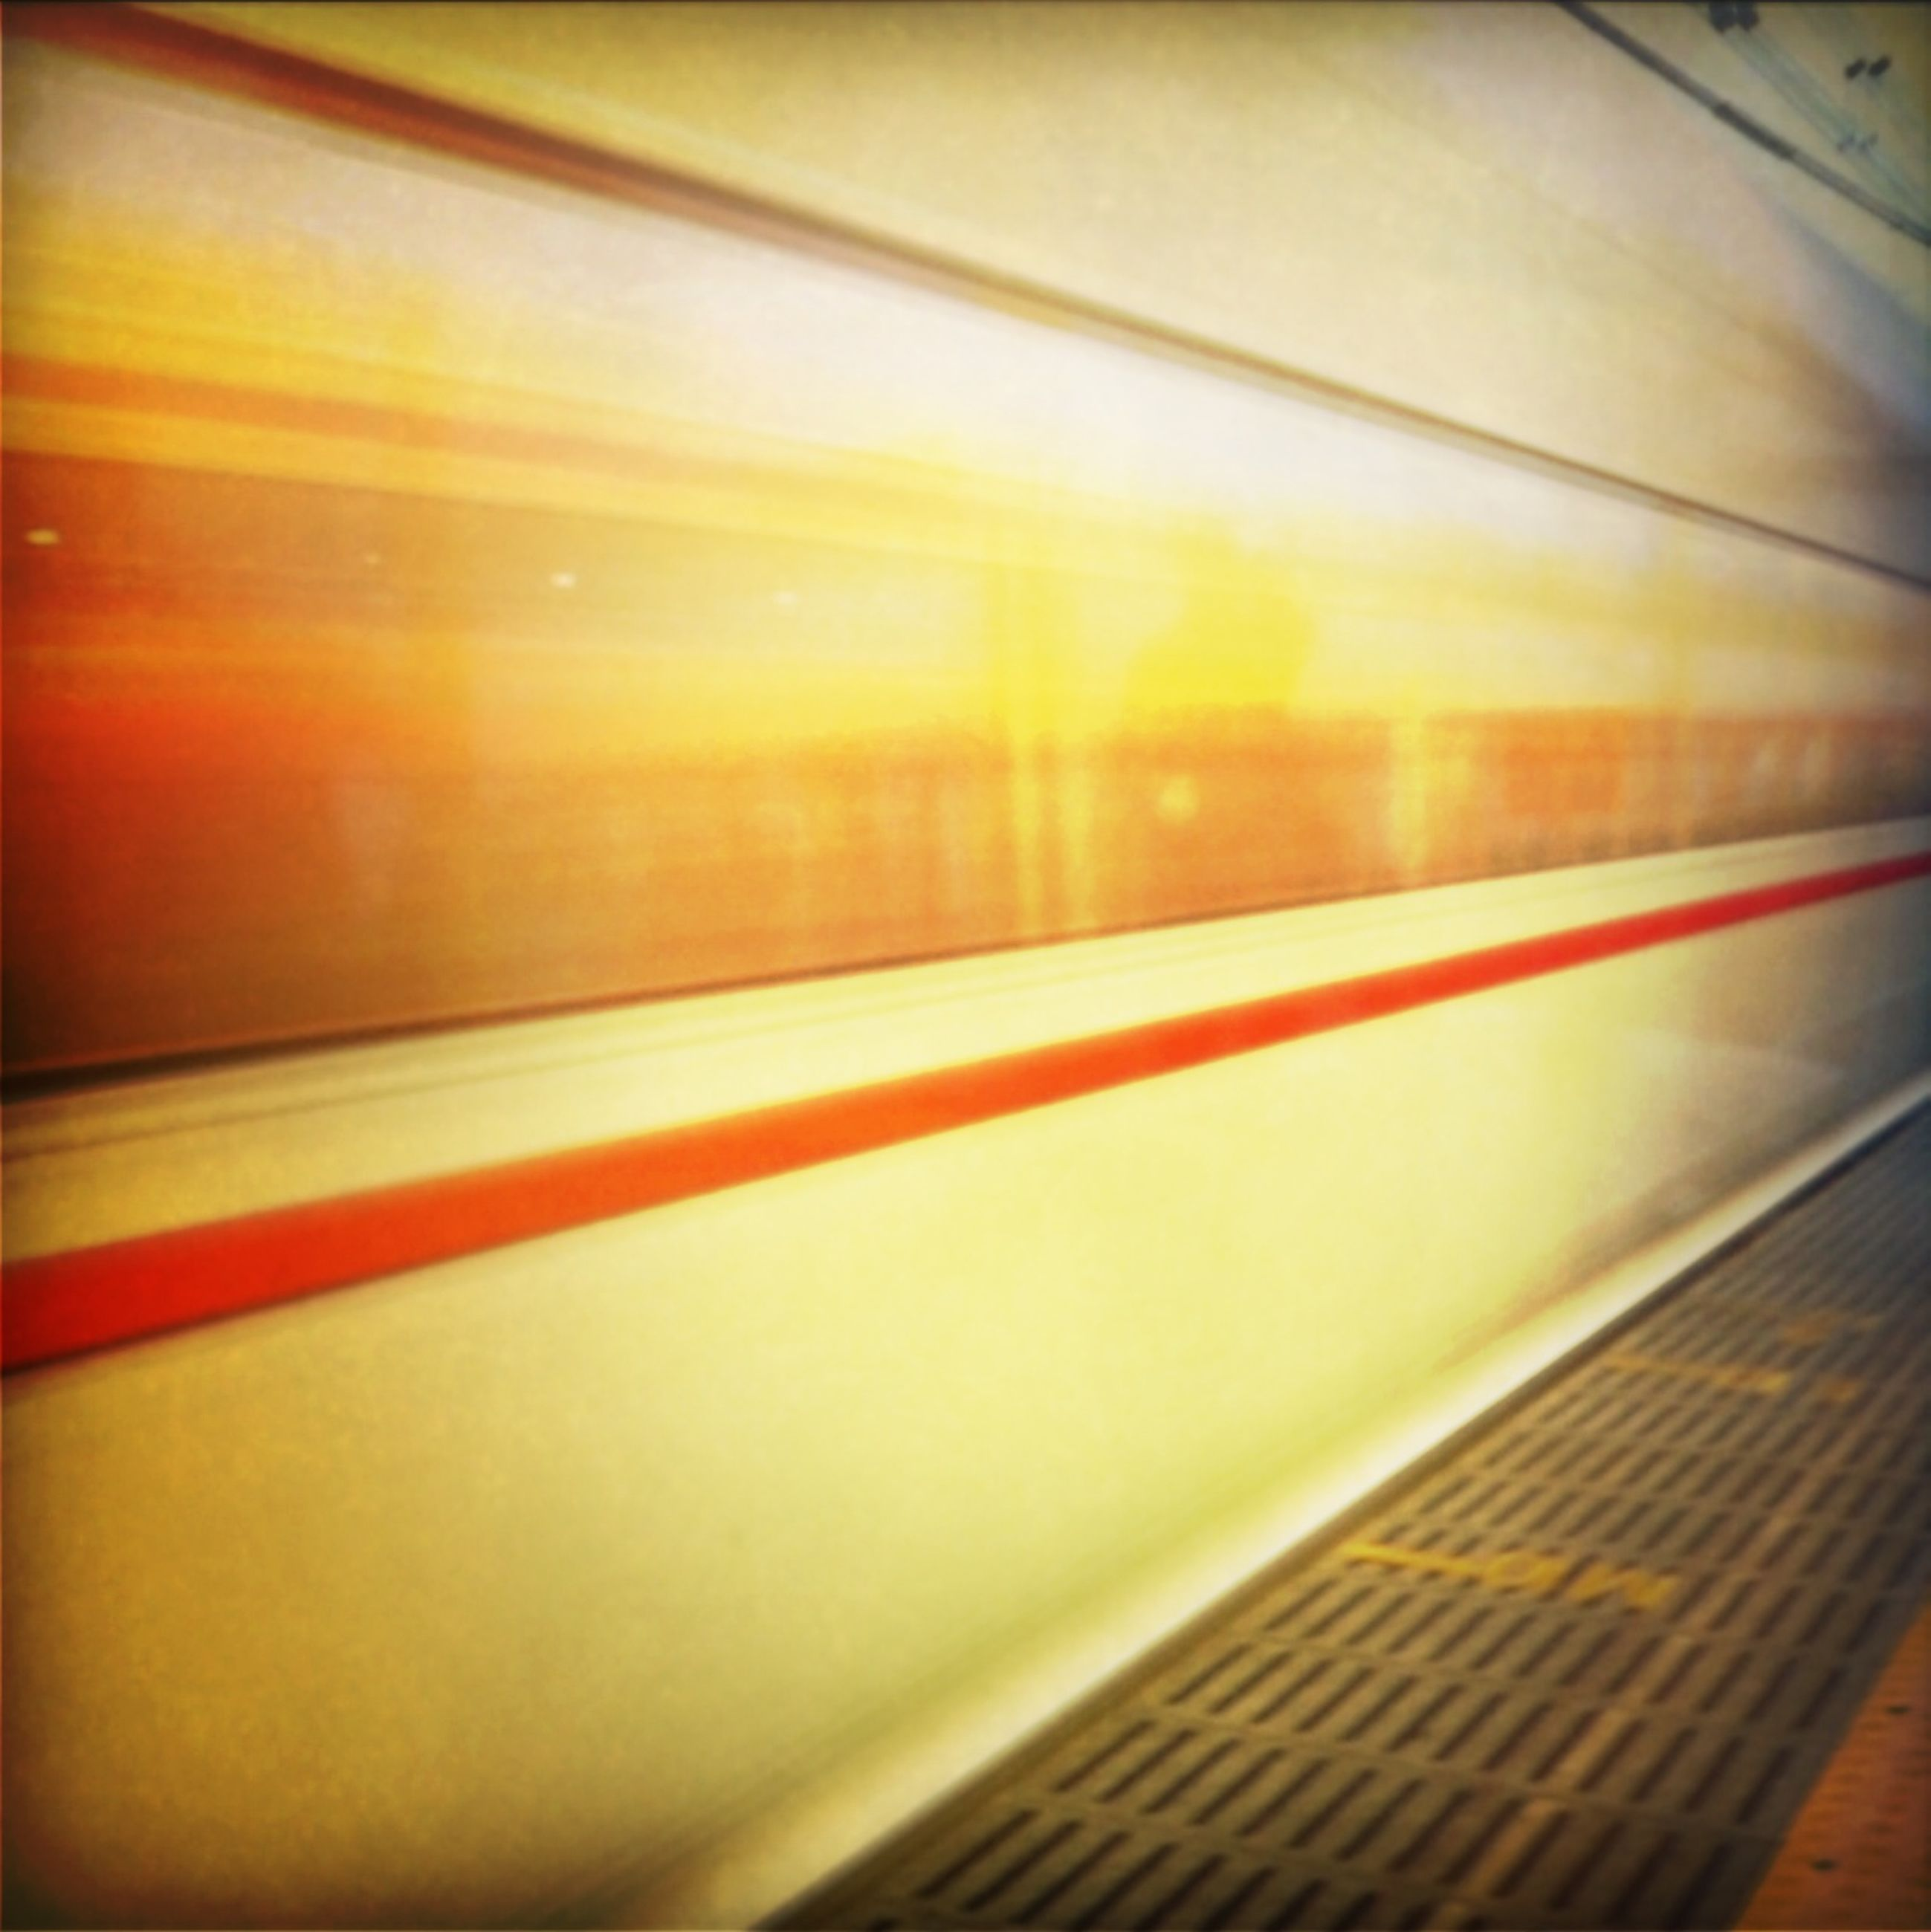 indoors, transportation, railroad station, public transportation, railroad station platform, illuminated, rail transportation, blurred motion, escalator, railing, subway station, motion, subway, speed, steps, railroad track, pattern, no people, high angle view, travel